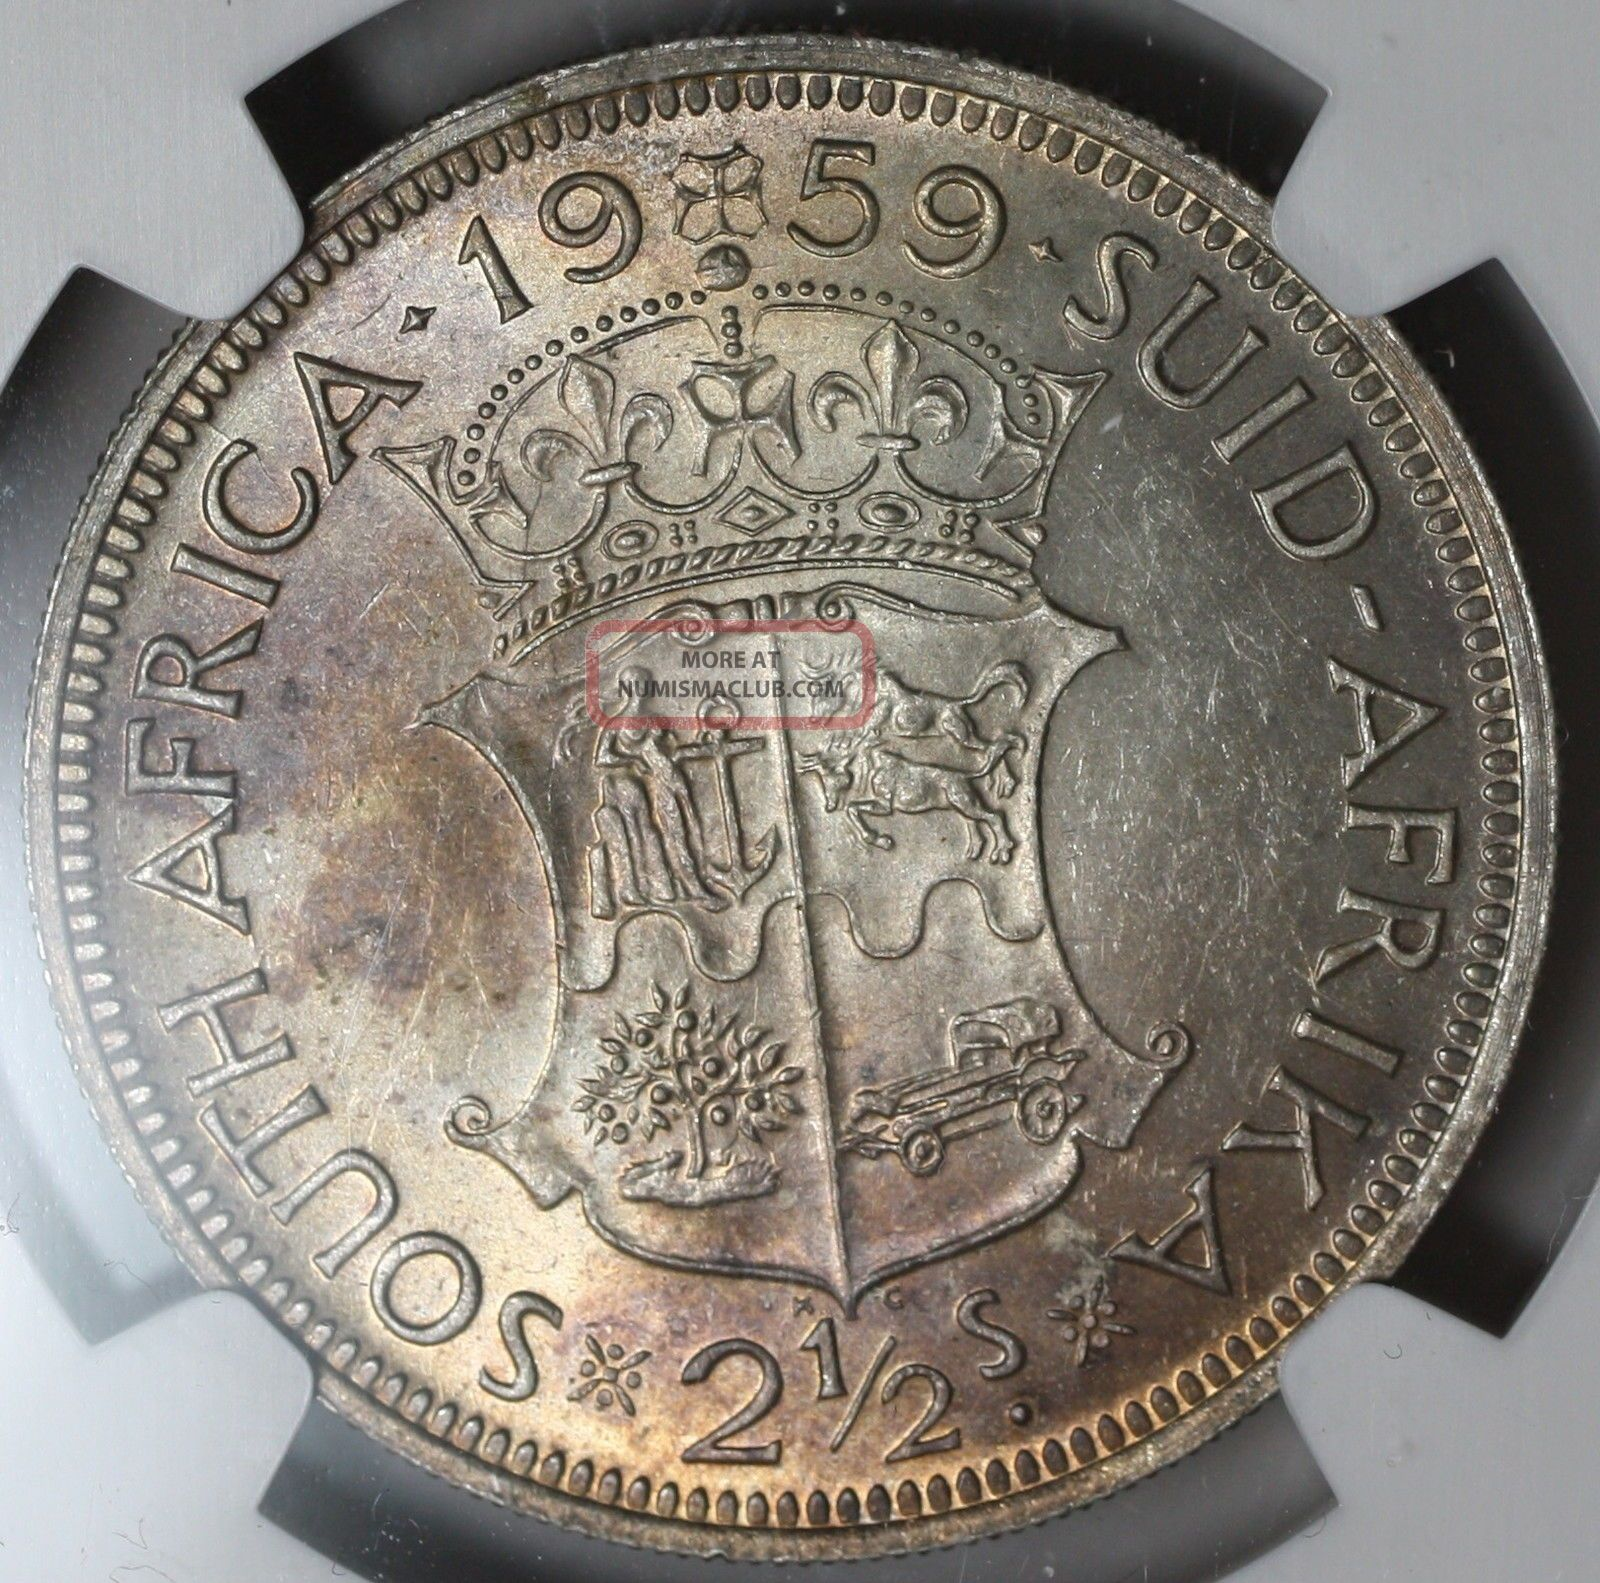 1959 Ngc Au 58 South Africa Rare 2 1 2 Shilllings Coin